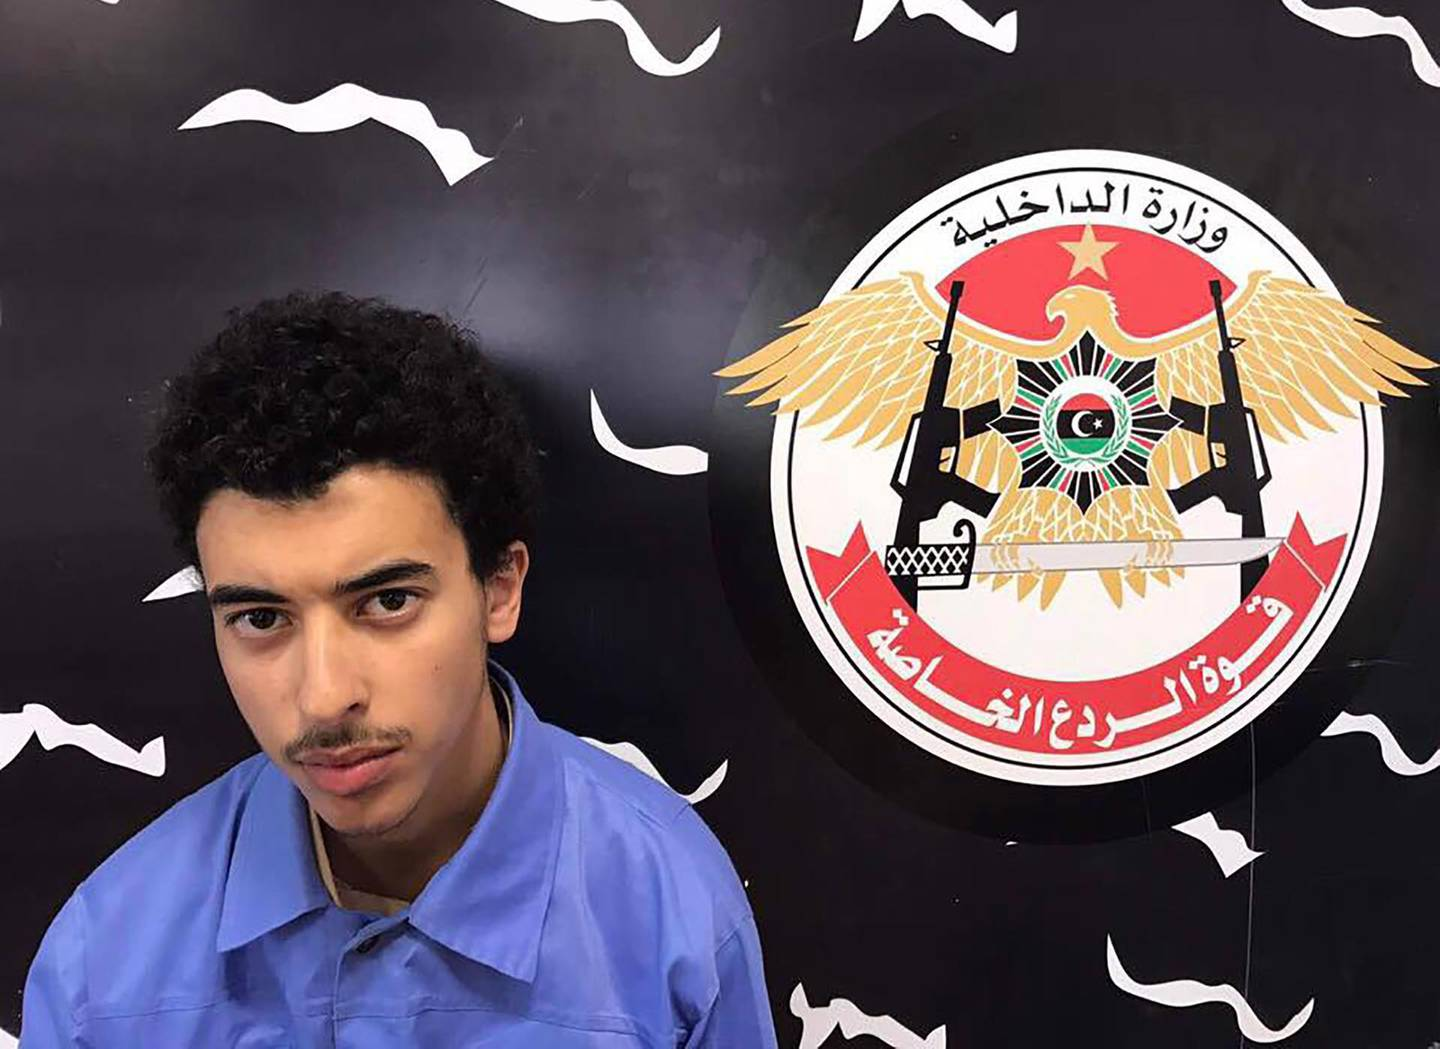 """(FILES) In this file photo taken on May 23, 2017 A photo released on the Facebook page of Libya's Ministry of Interior's Special Deterrence Force on May 24, 2017 claims to shows Hashem Abedi, the brother of the man suspected of carrying out the bombing in the British city of Manchester, after he was detained in Tripoli for alleged links to the Islamic State (IS) group. Hashem Abedi, brother of the Manchester bomber, was found guilty by an Old Bailey jury on March 17, 2020 of the murder of 22 people at an Ariana Grande concert. - RESTRICTED TO EDITORIAL USE - MANDATORY CREDIT """"AFP PHOTO / LIBYA'S SPECIAL DETERRENCE FORCE"""" - NO MARKETING NO ADVERTISING CAMPAIGNS - DISTRIBUTED AS A SERVICE TO CLIENTS    / AFP / LIBYA'S SPECIAL DETERRENCE FORCE / - / RESTRICTED TO EDITORIAL USE - MANDATORY CREDIT """"AFP PHOTO / LIBYA'S SPECIAL DETERRENCE FORCE"""" - NO MARKETING NO ADVERTISING CAMPAIGNS - DISTRIBUTED AS A SERVICE TO CLIENTS"""